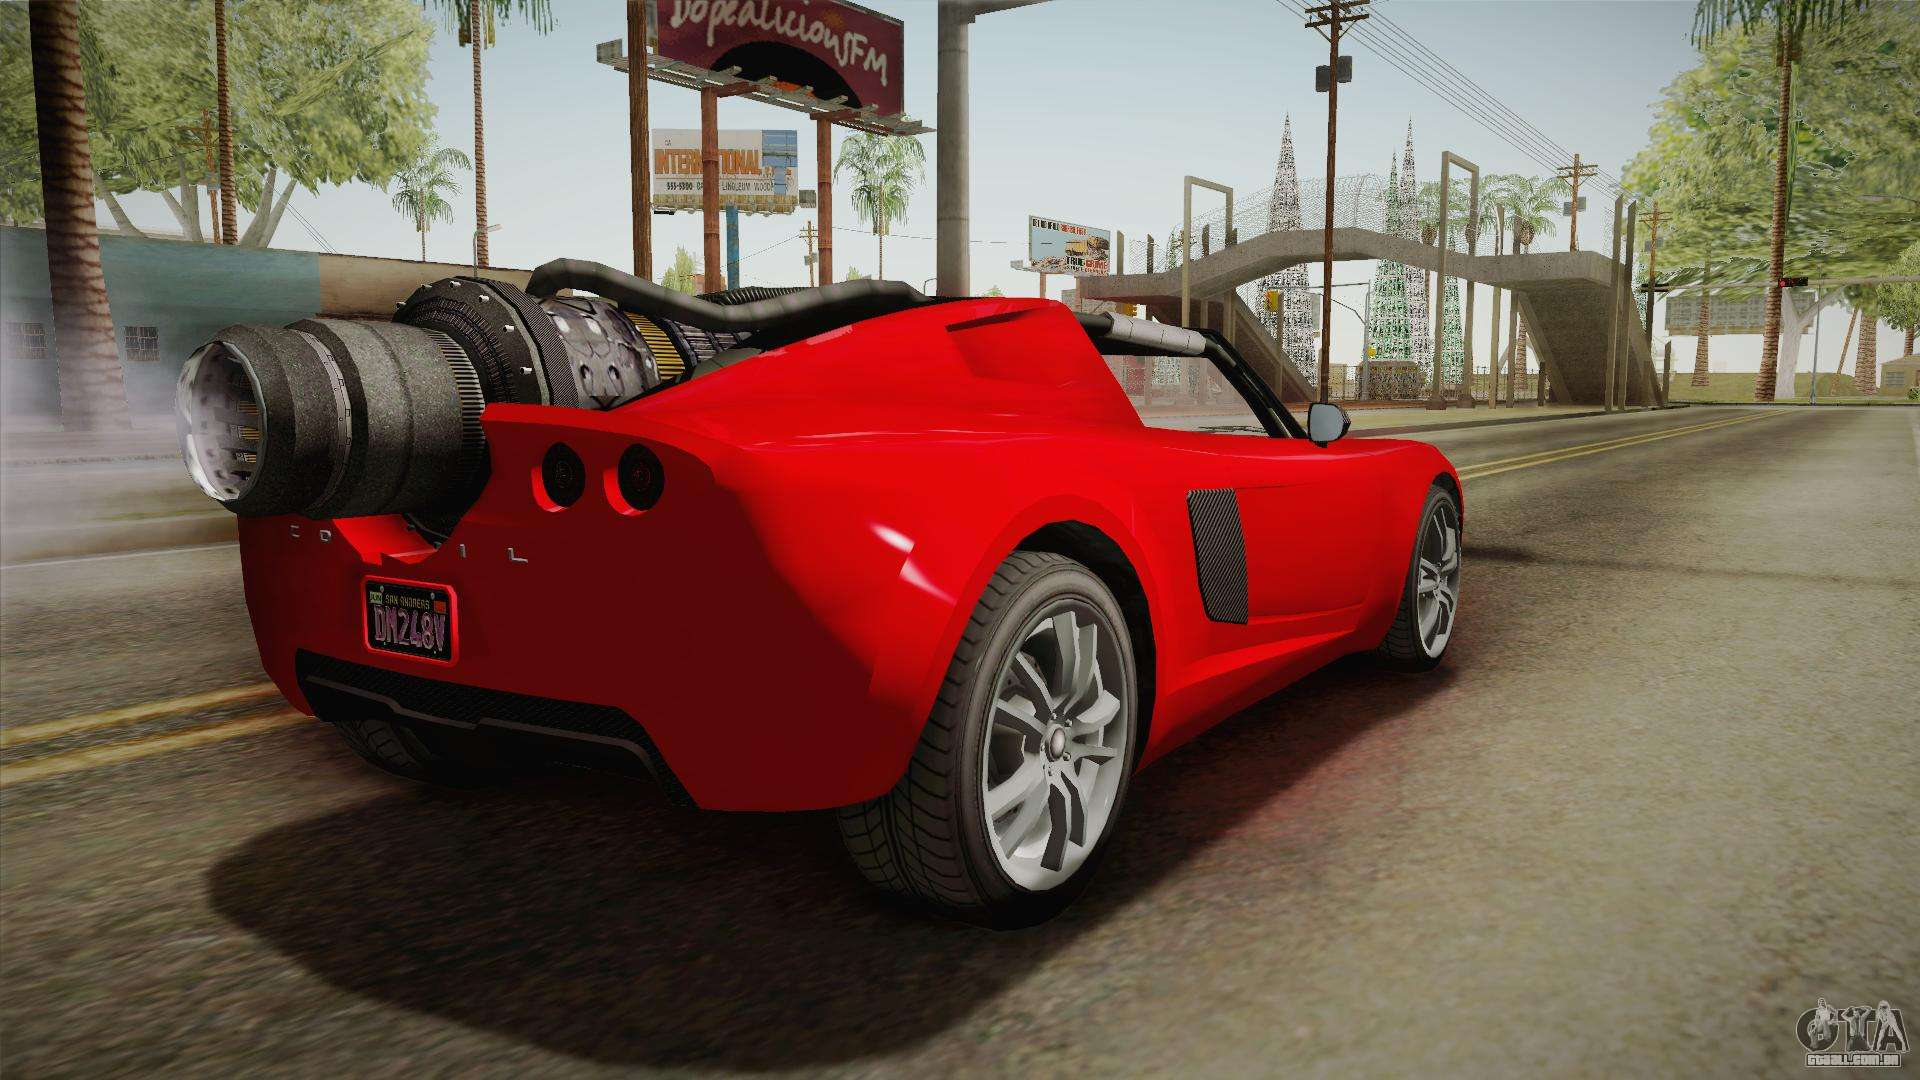 Gta 5 Zentorno In Real Life Name likewise 67576 Gta 5 Coil Brawler in addition 89147 Gta 5 Coil Rocket Voltic Ivf together with 76293 Tesla Model S in addition Watch. on coil in gta 5